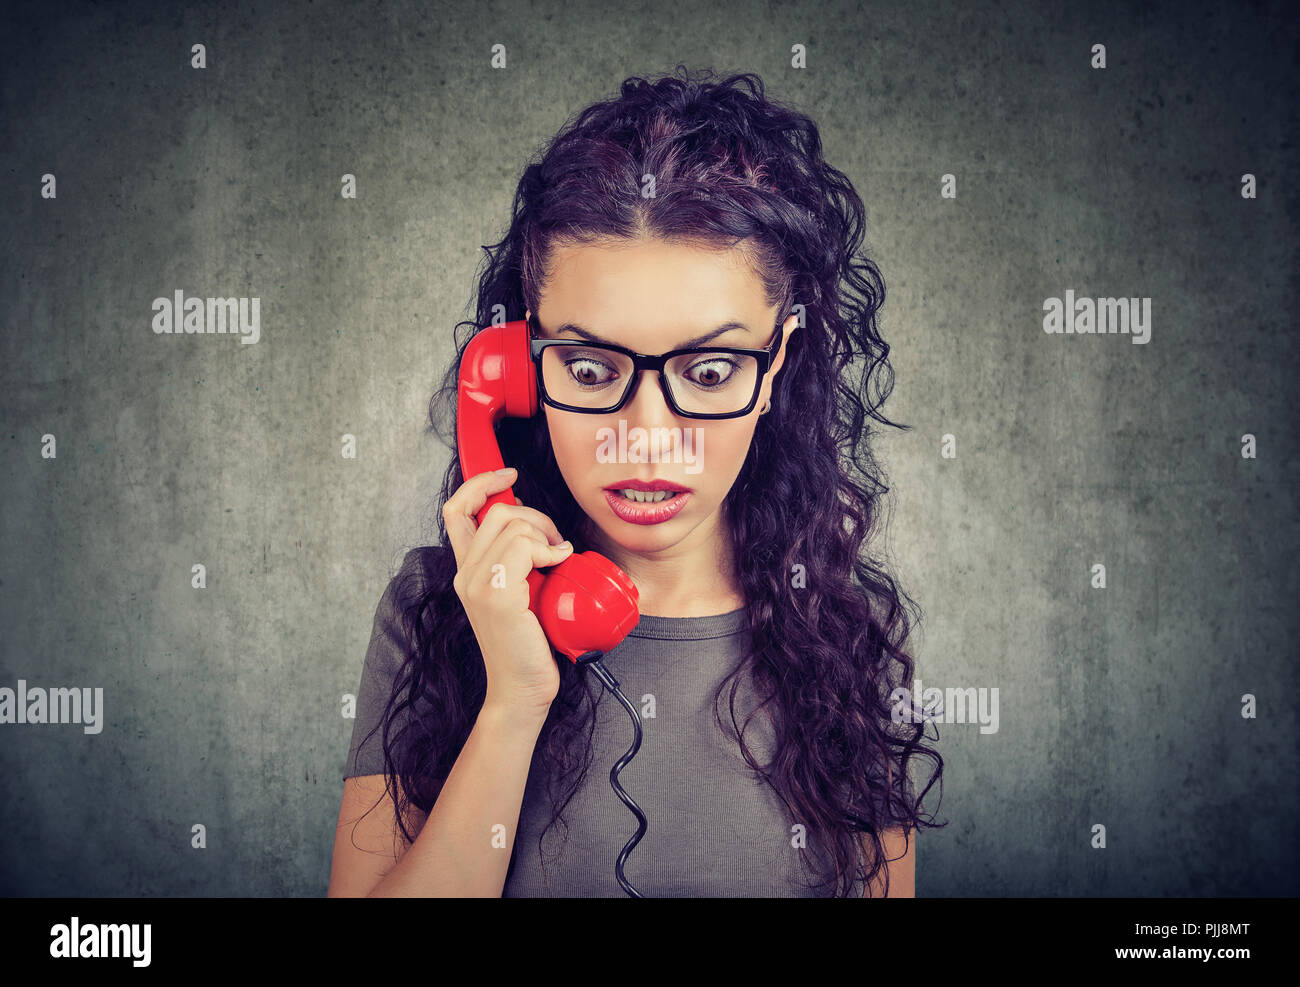 Woman receiving shocking news on a phone and looking down with fear. - Stock Image